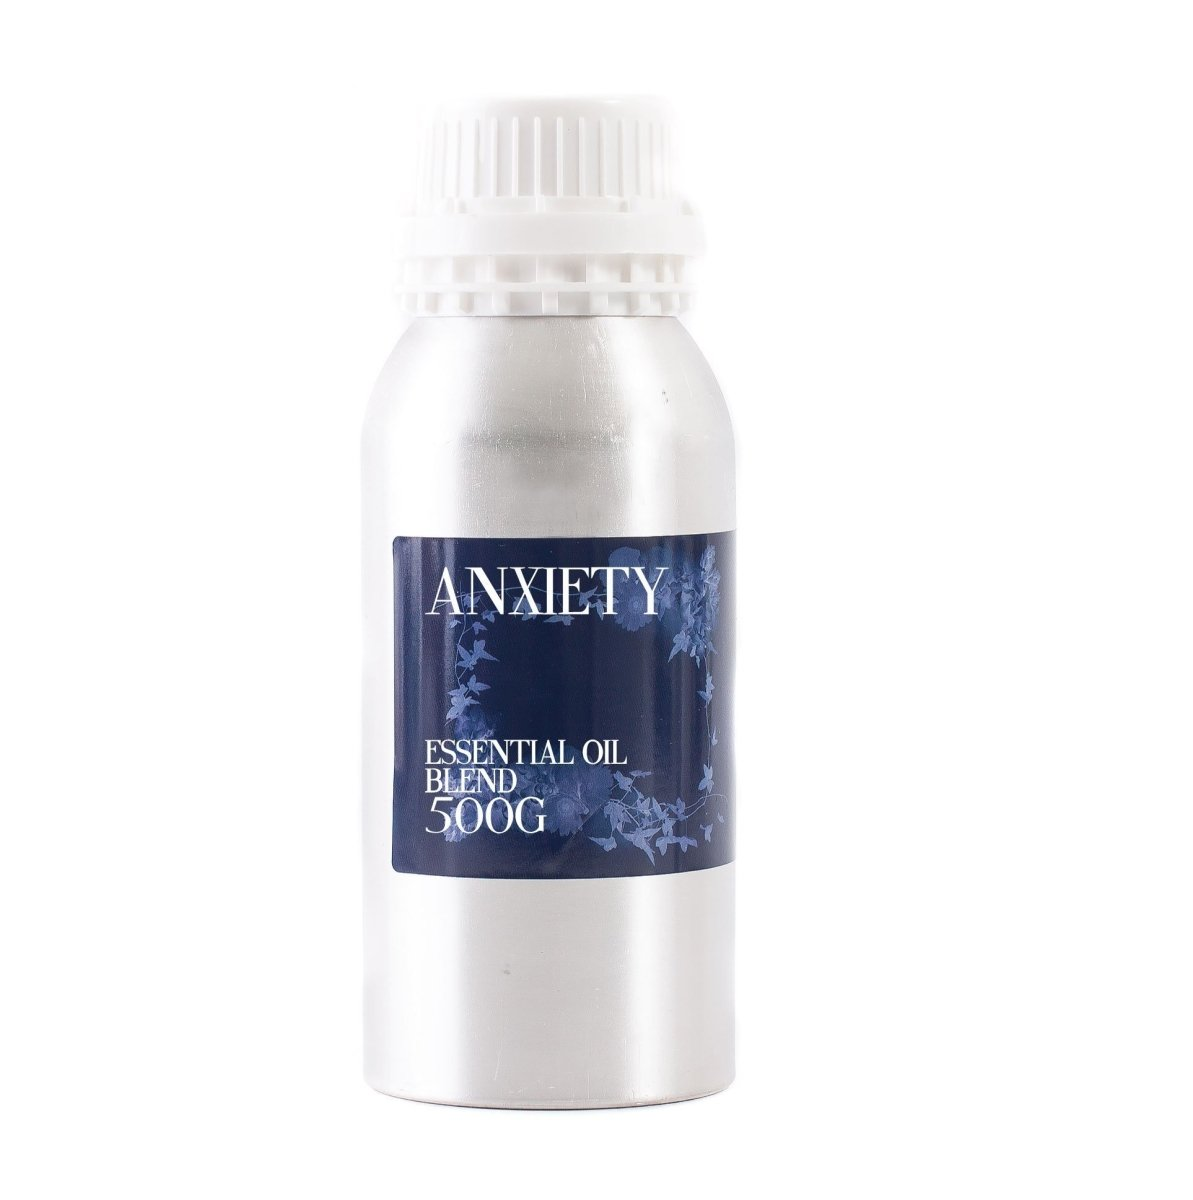 Anxiety - Essential Oil Blends - Mystic Moments UK